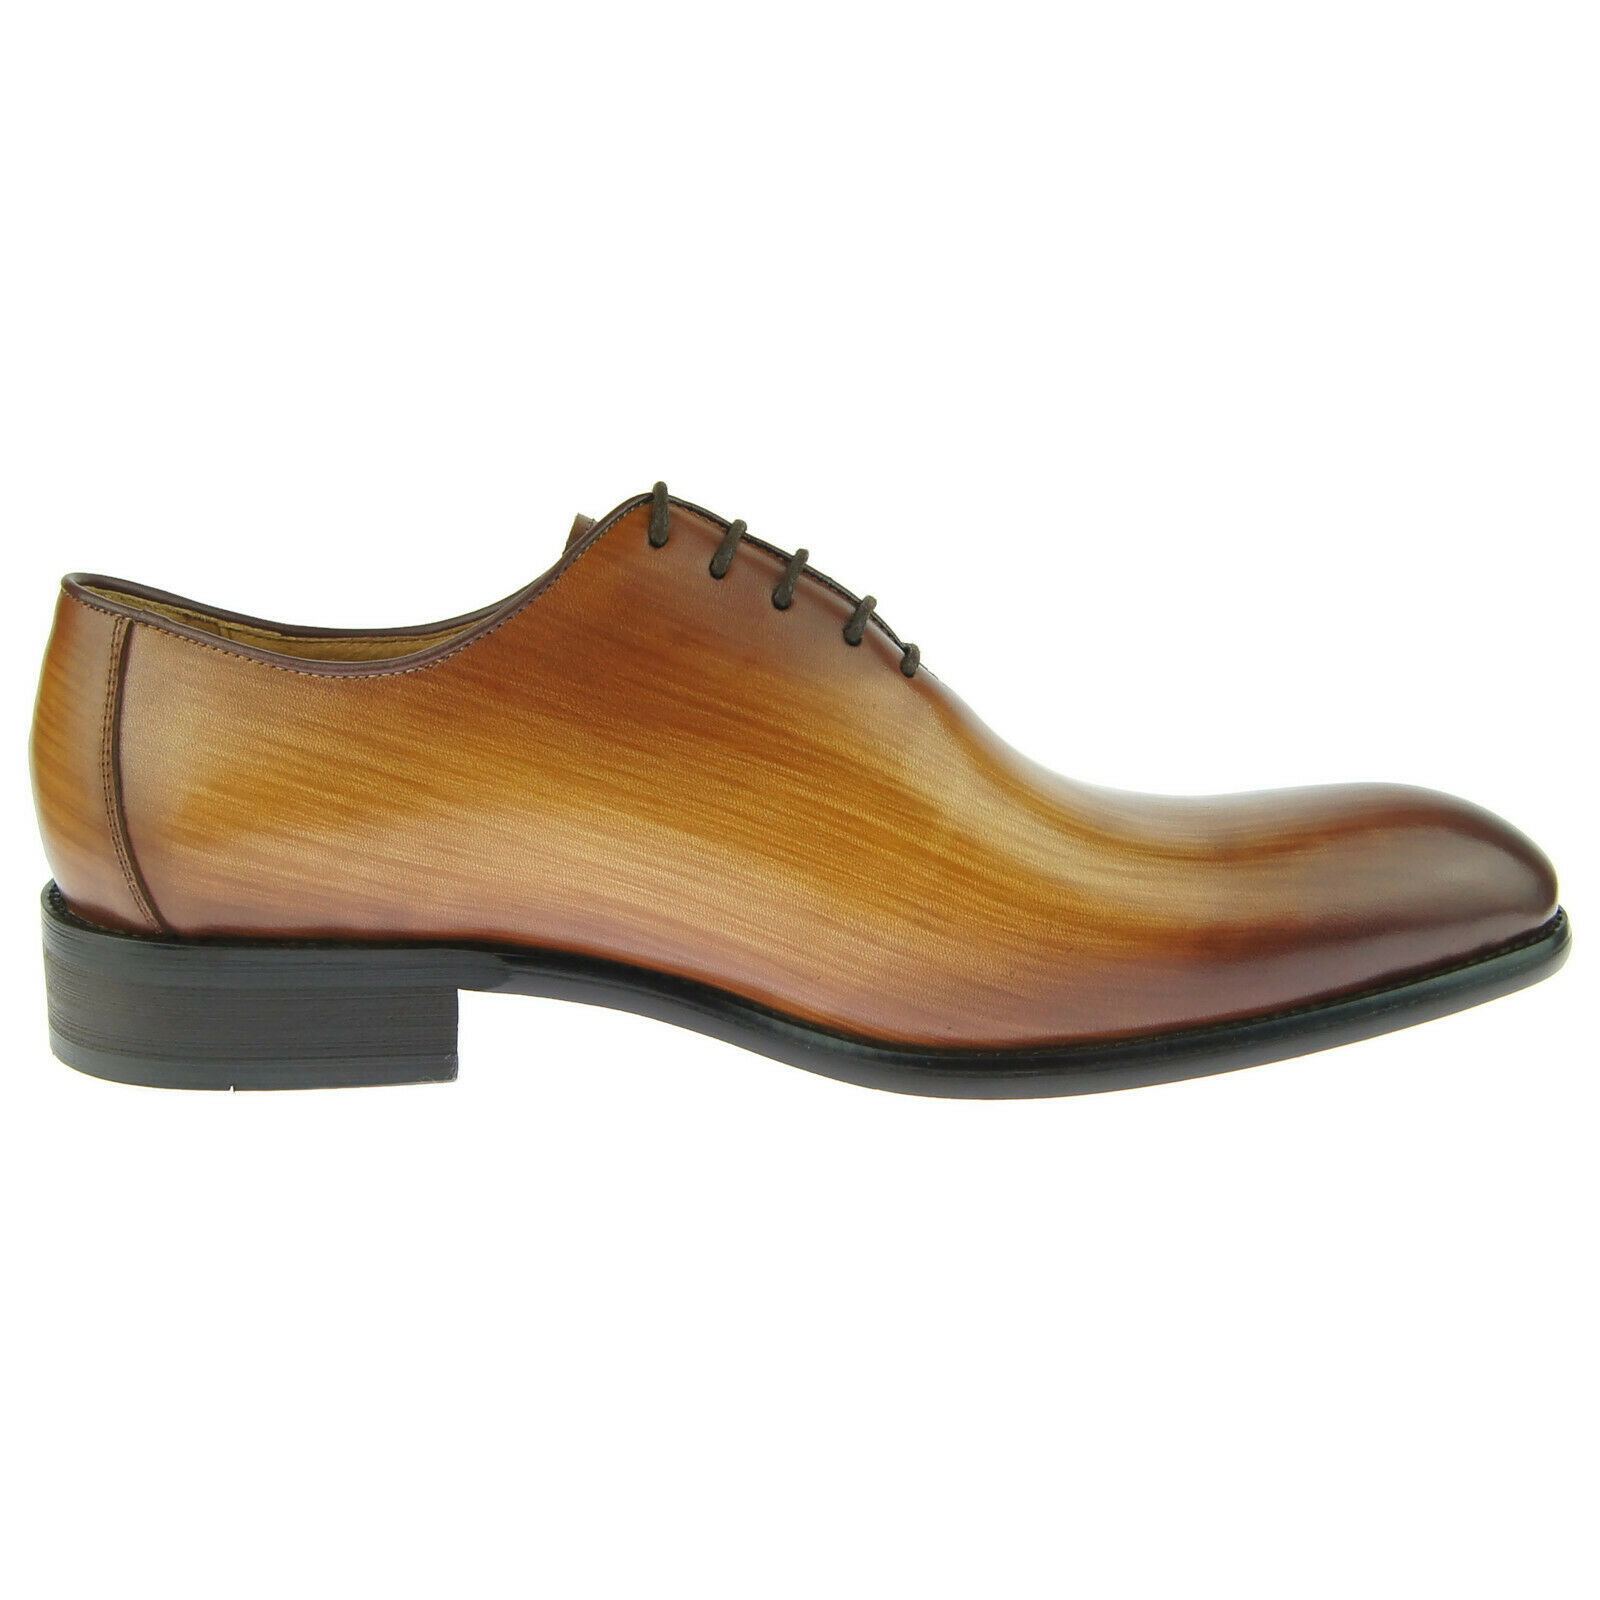 Carrucci Plain Toe Wholecut Oxford, Men's Dress Leather Shoes, Cognac 1